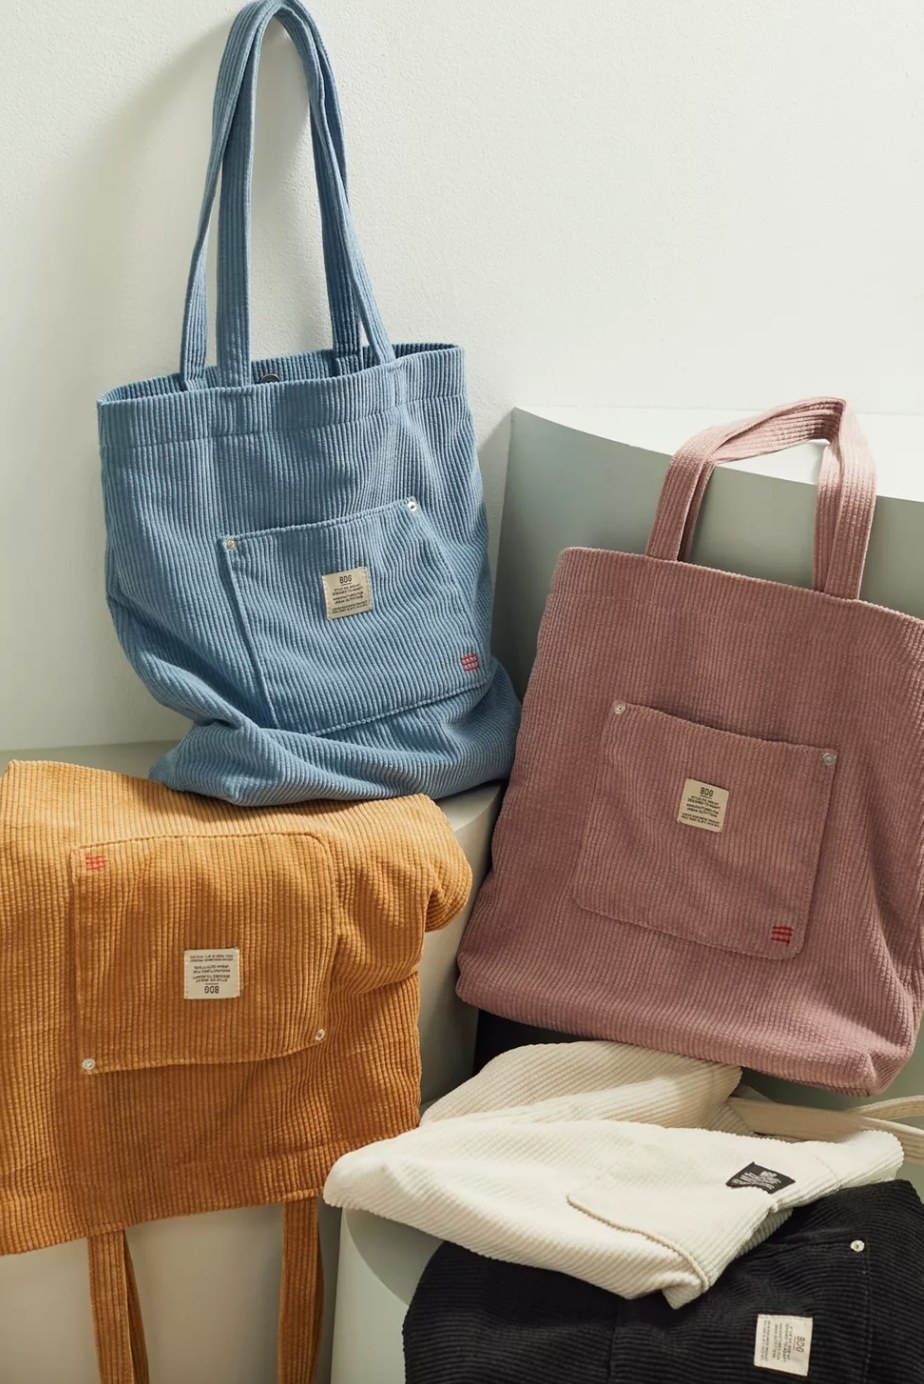 the corduroy tote bag in blue, orange, and pink